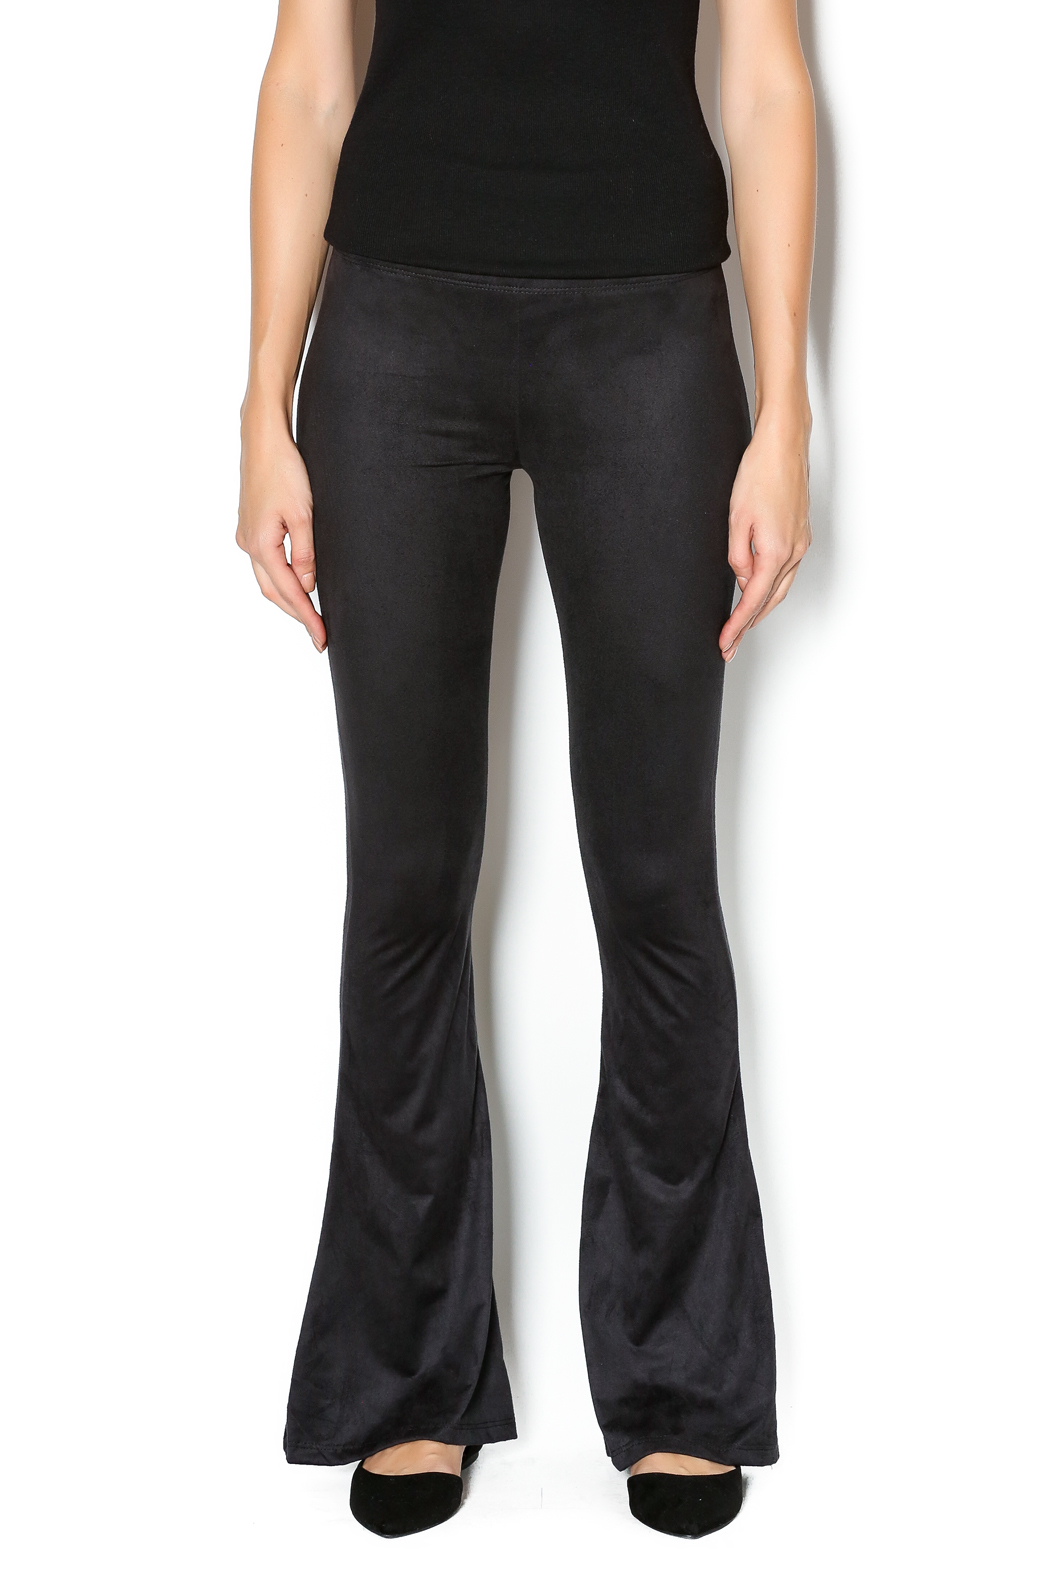 Luxe Suede Flare Pants From Long Island By Luxe Boutique